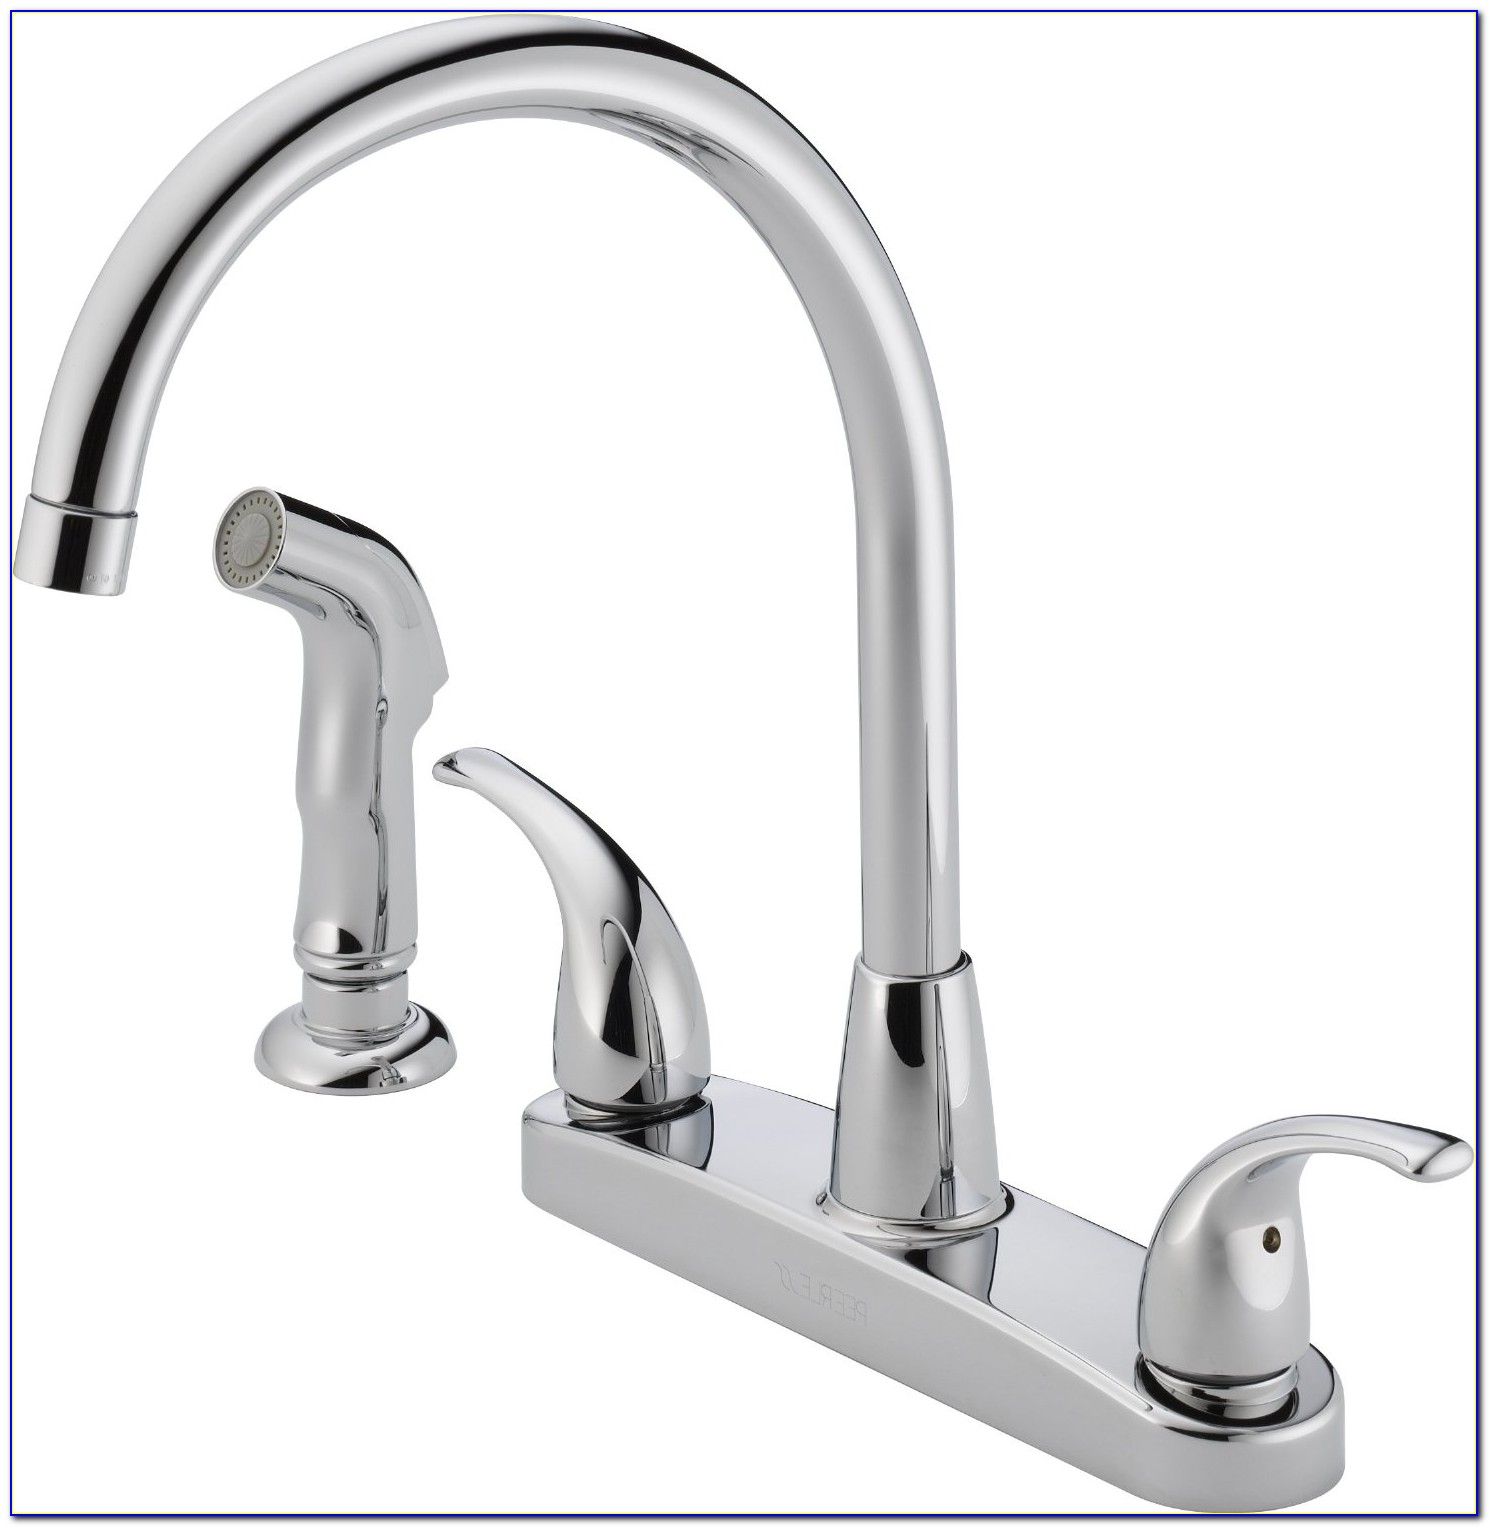 Peerless Pull Out Kitchen Faucet Installation